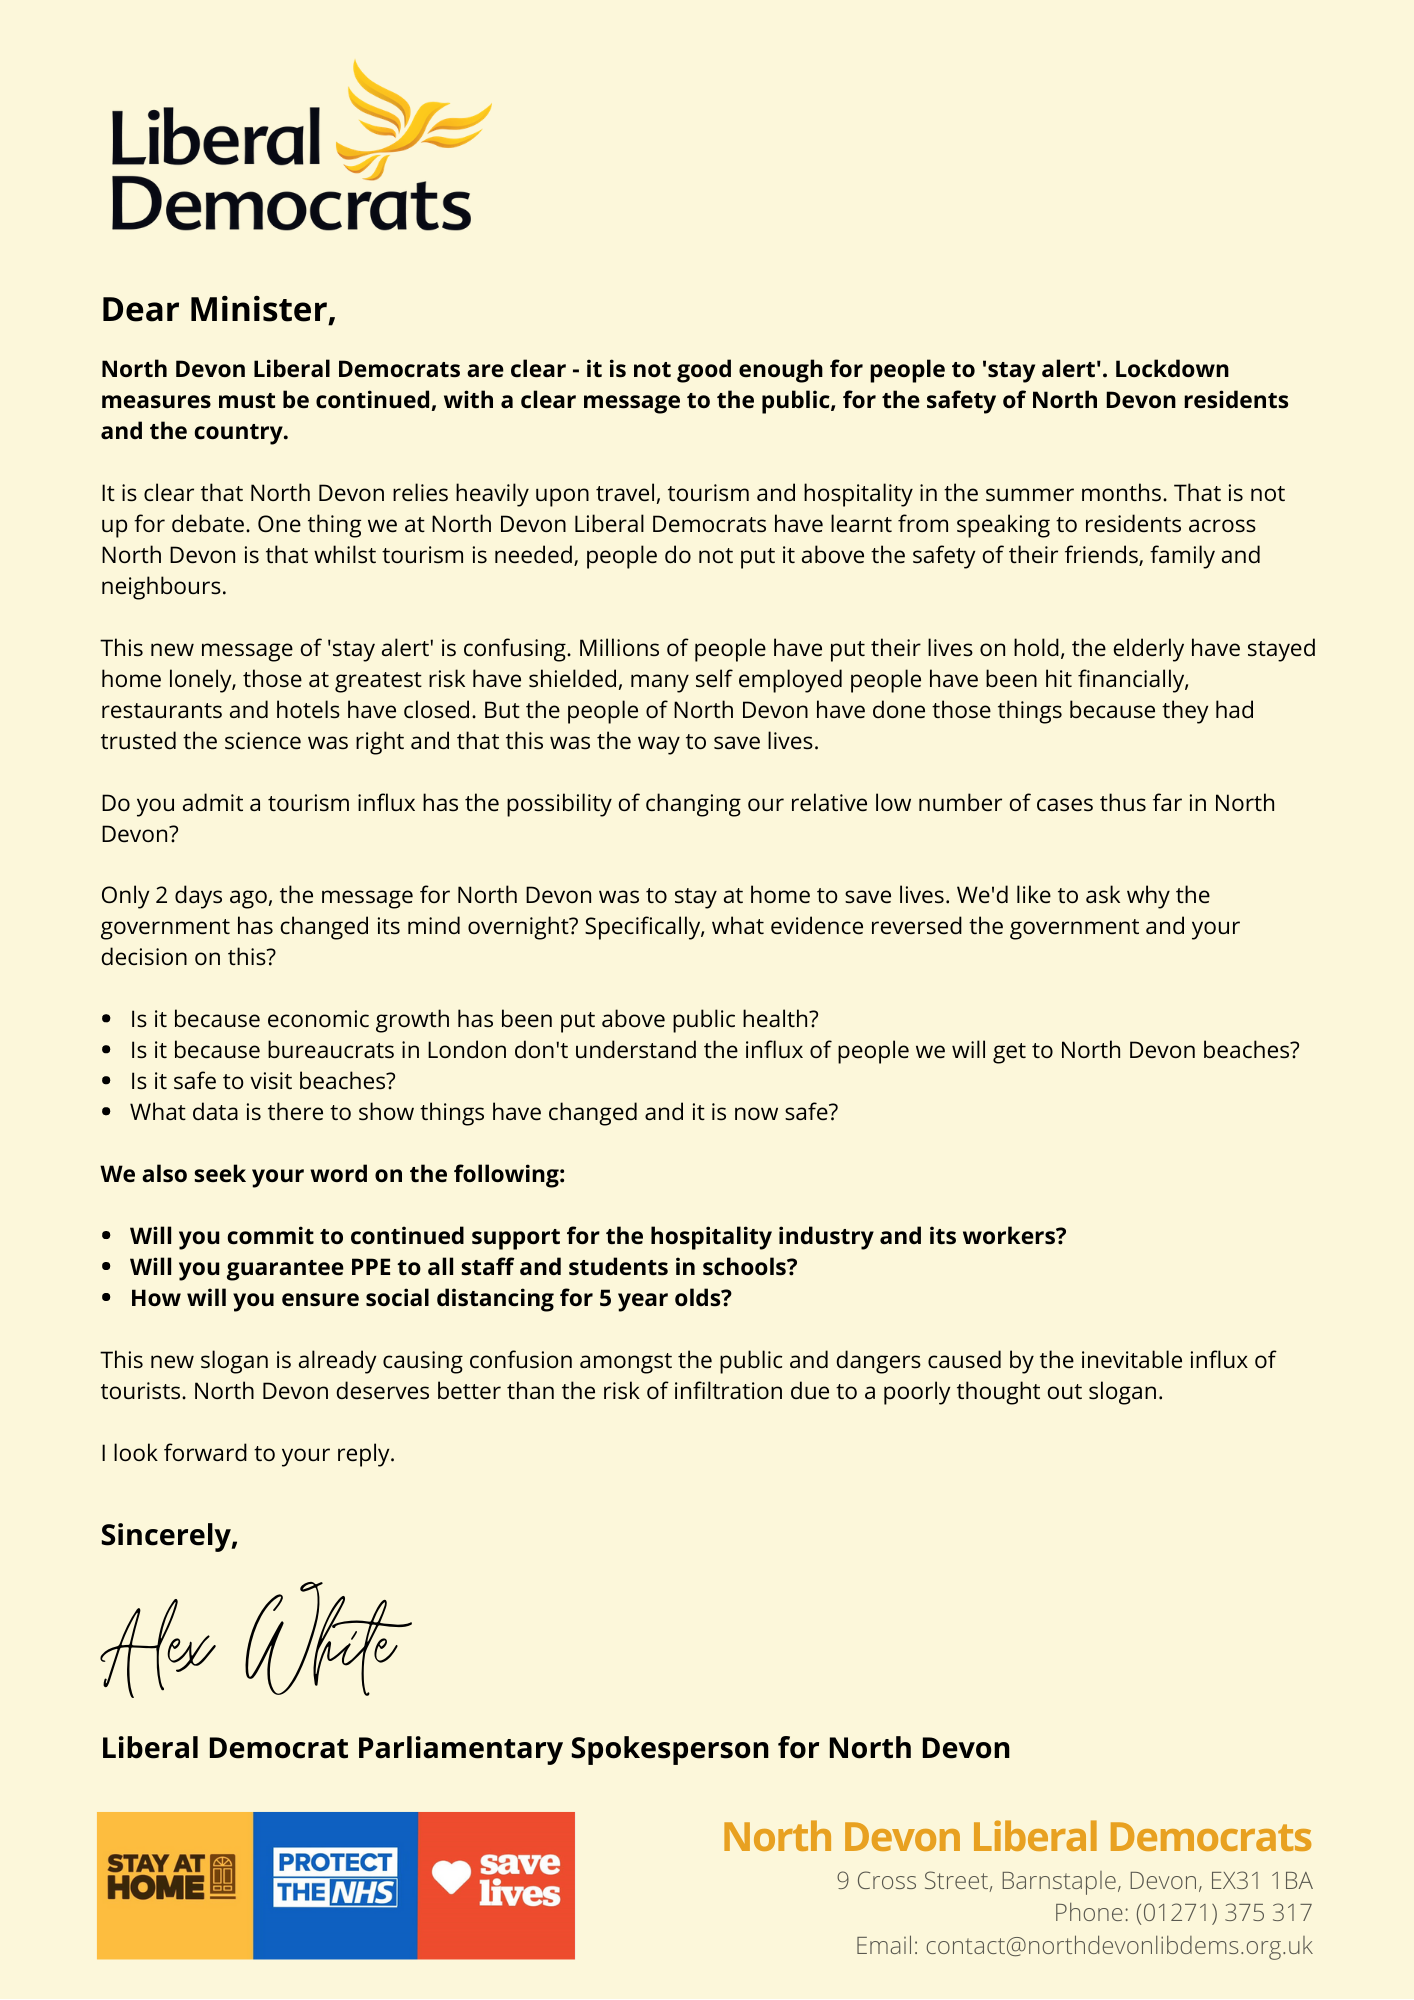 Copy of letter from Alex White to members of the government